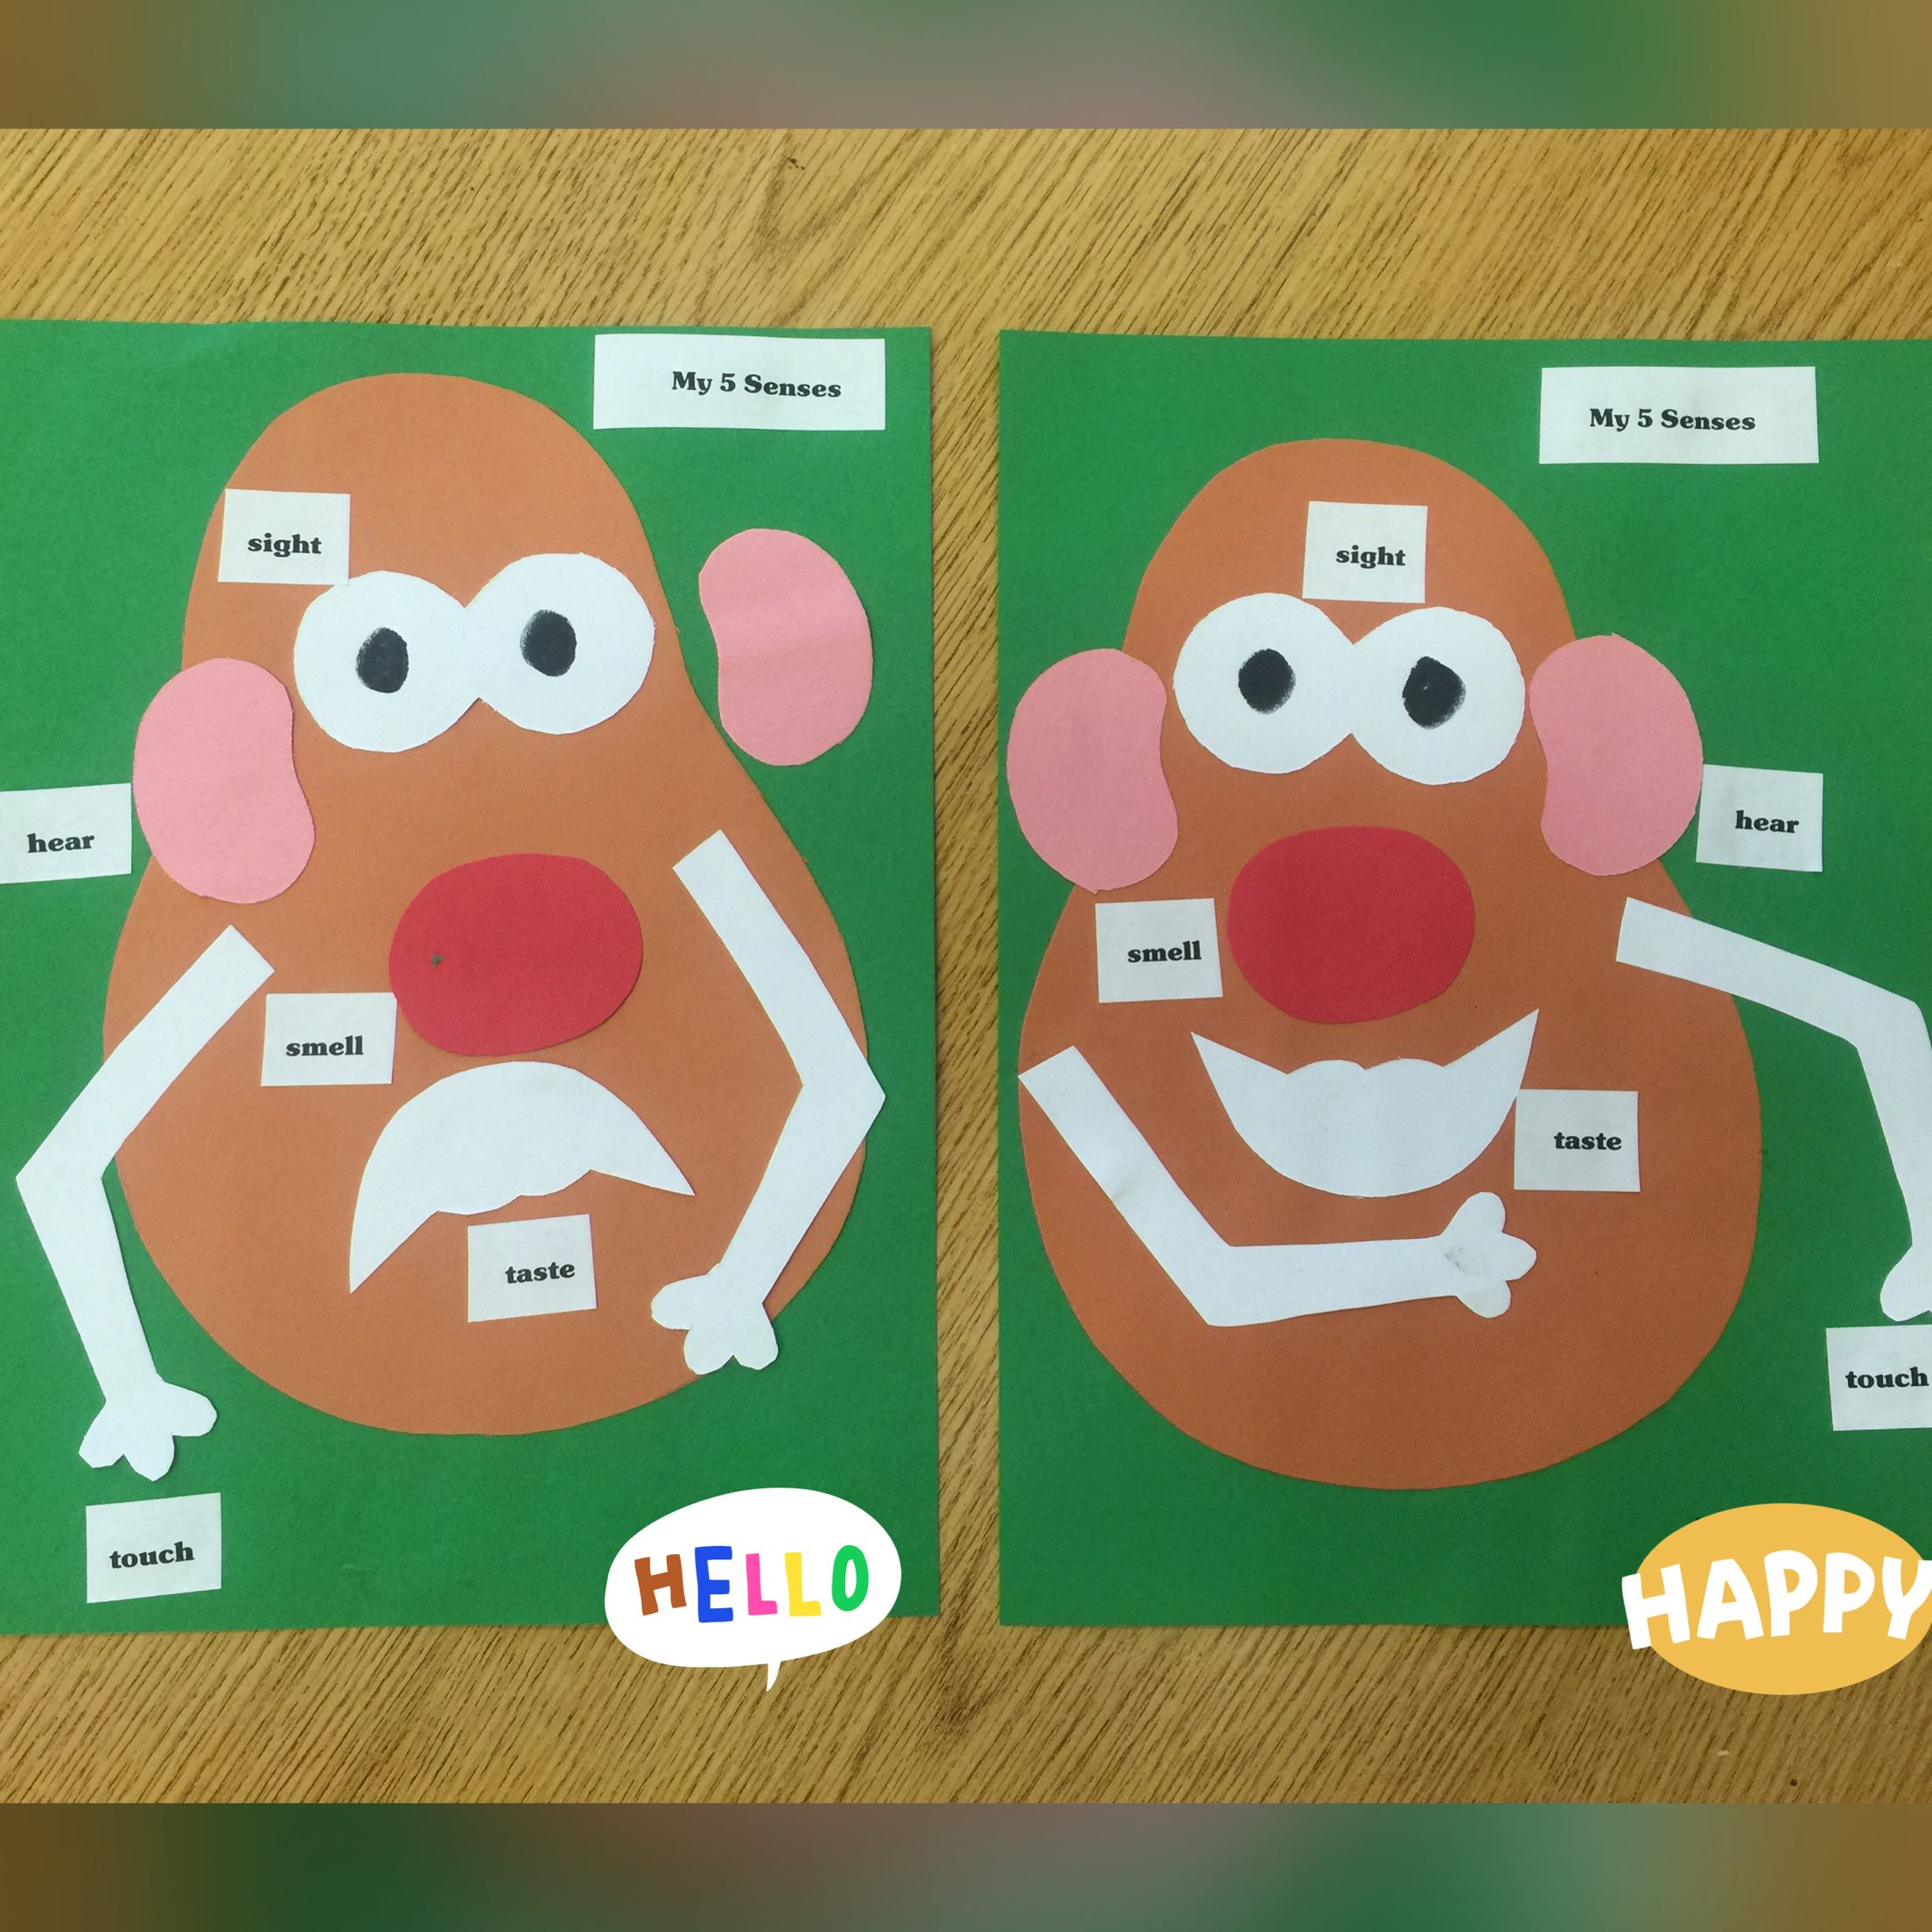 Mr Potato Head 5 Senses Activity Preschool Or Kindergarten